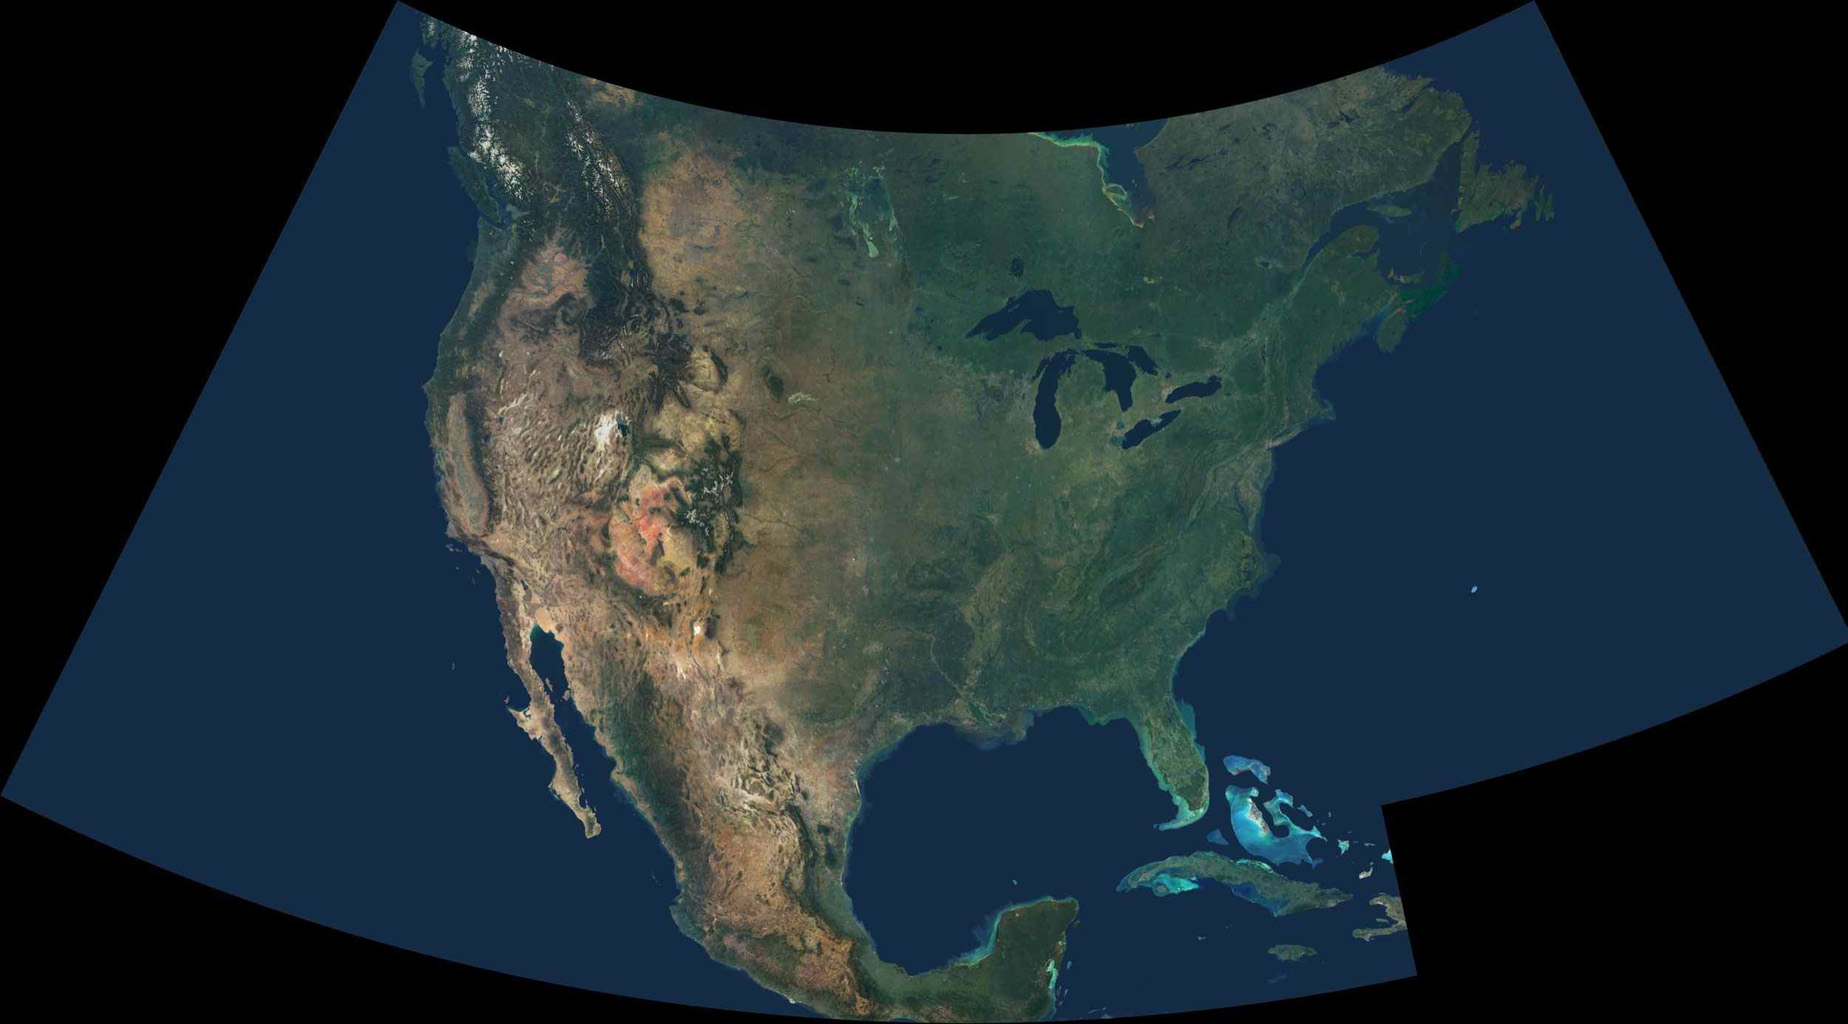 north america from space hd - photo #30